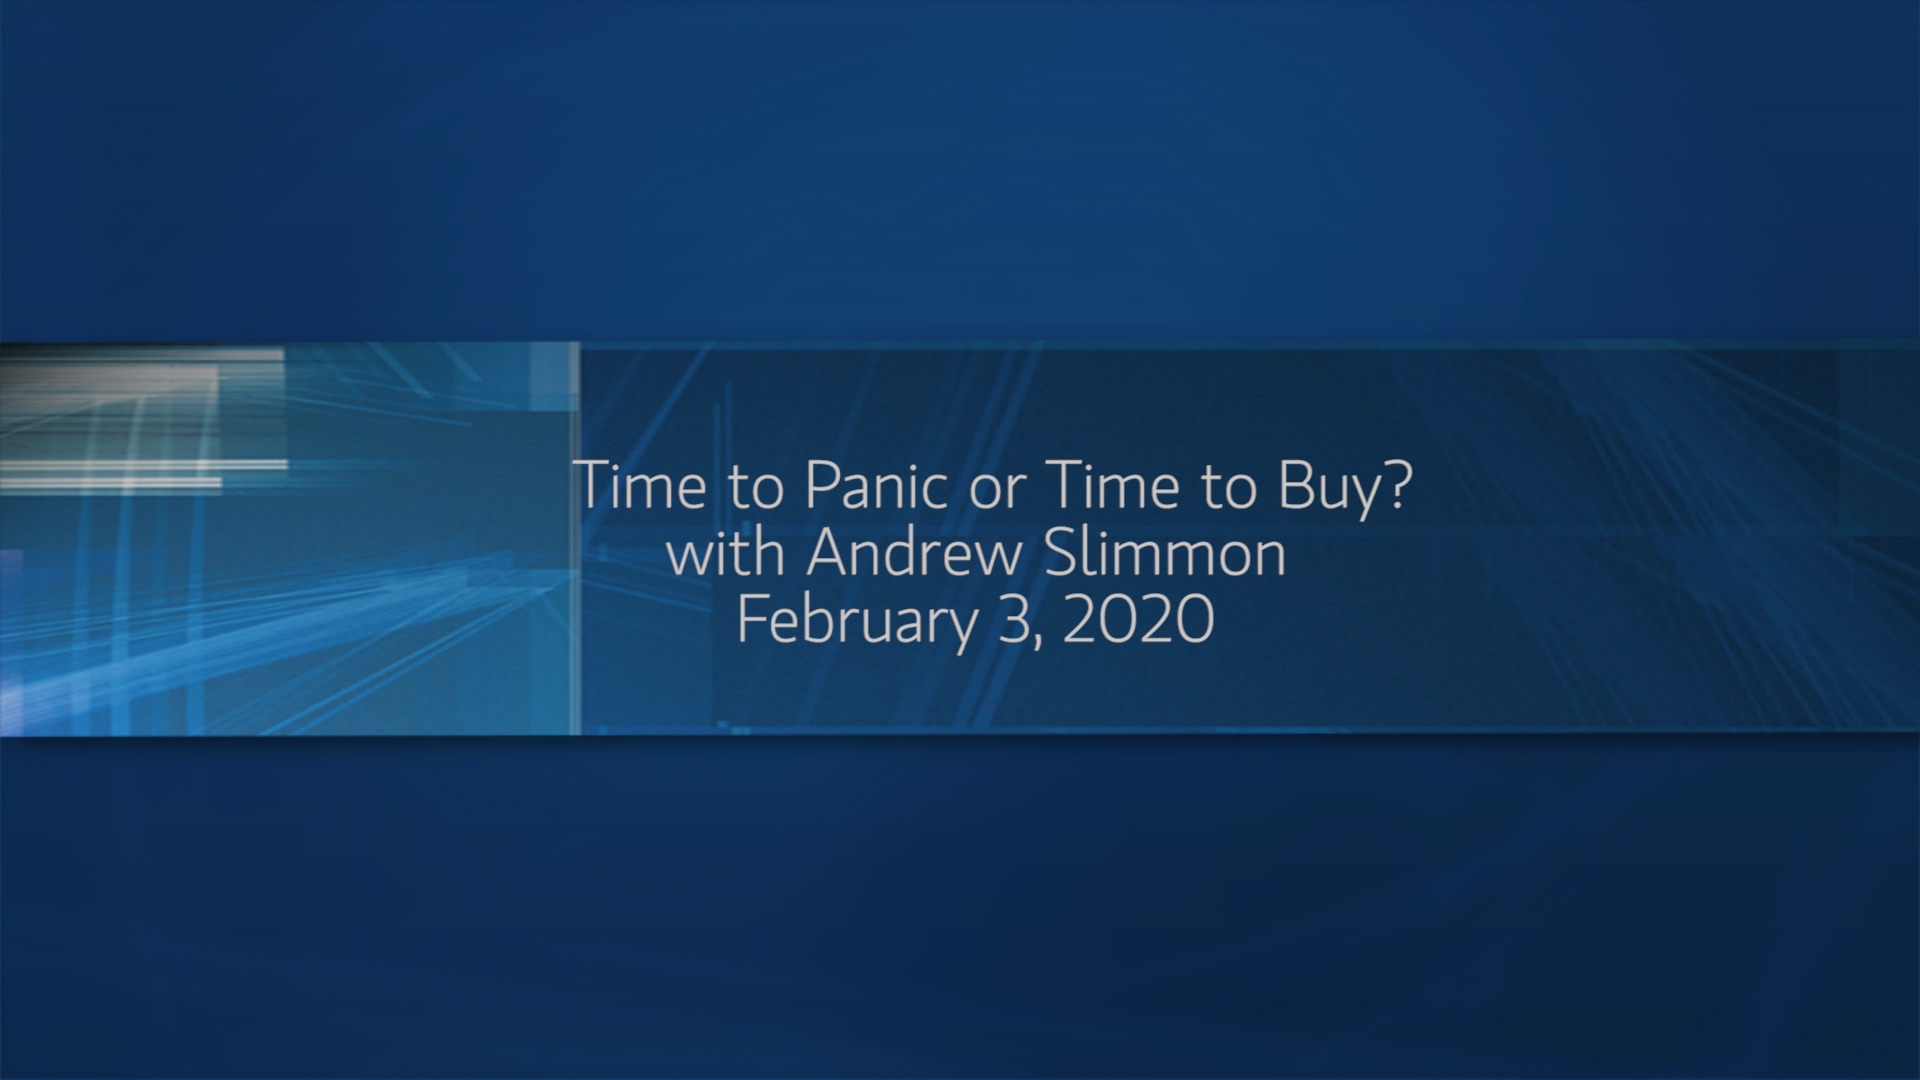 Time to Panic or Time to Buy?